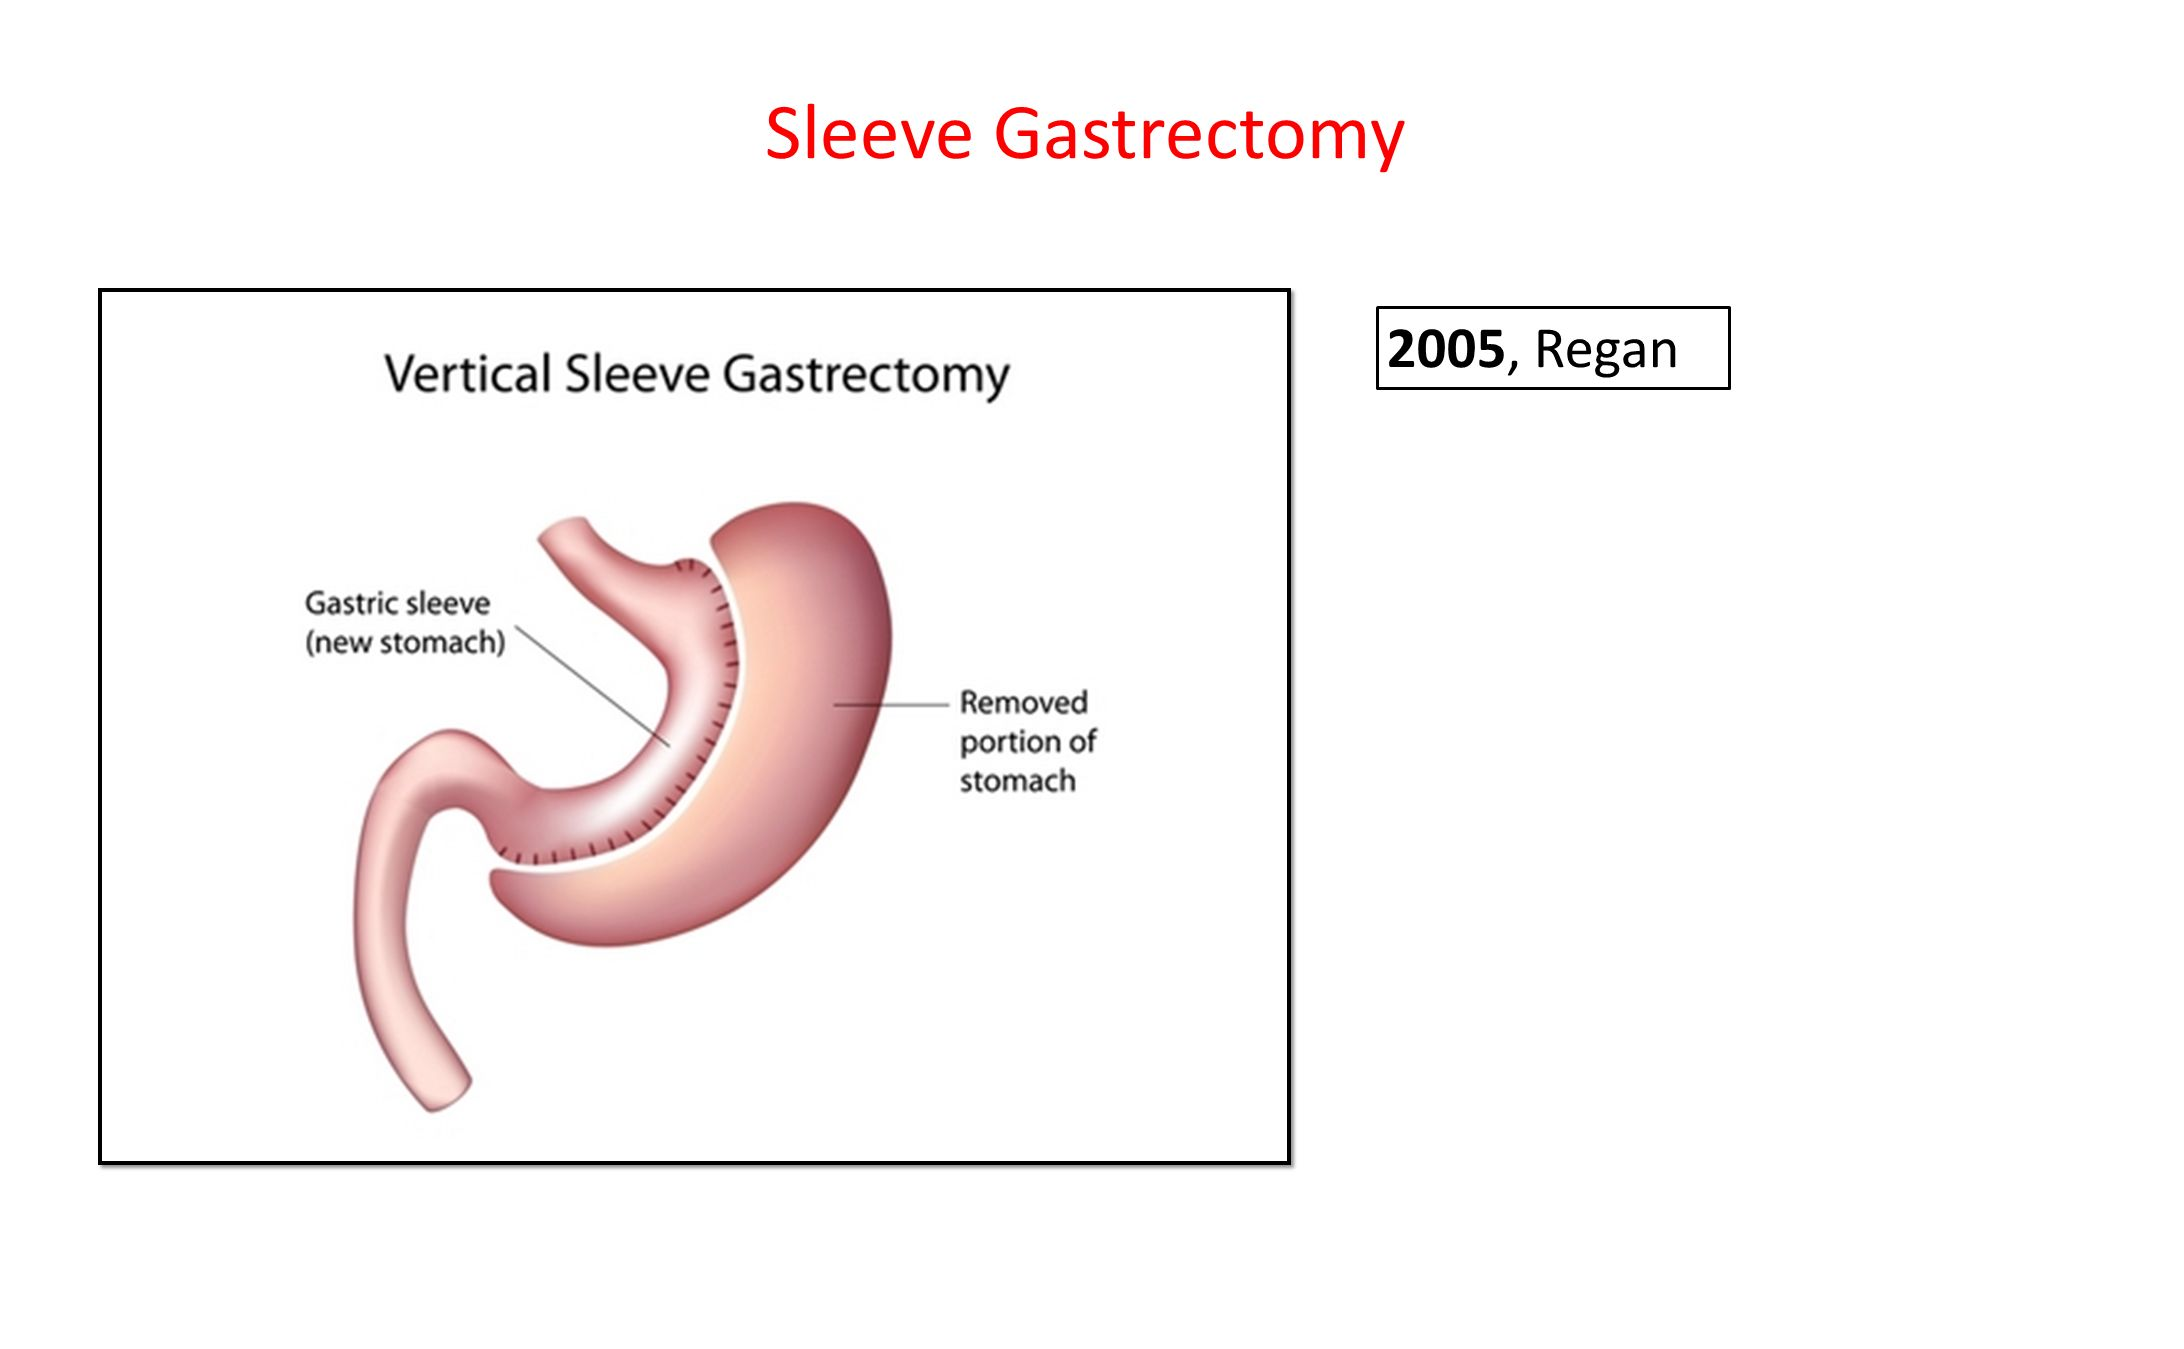 Sleeve Gastrectomy 2005, Regan